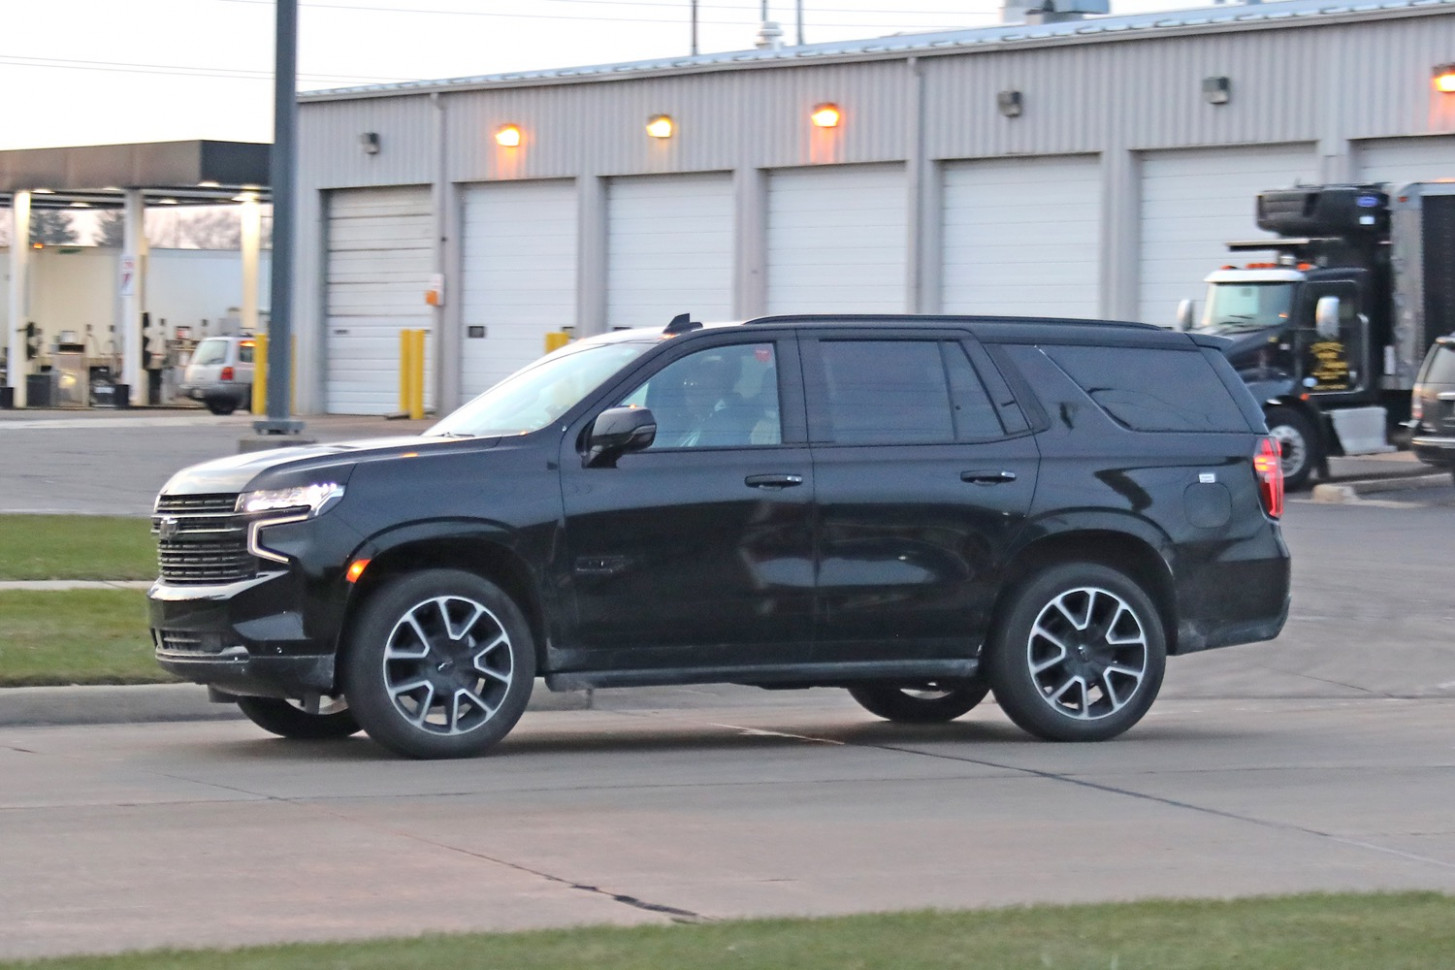 8 Chevrolet Tahoe RST On The Street: Live Photo Gallery   GM ..